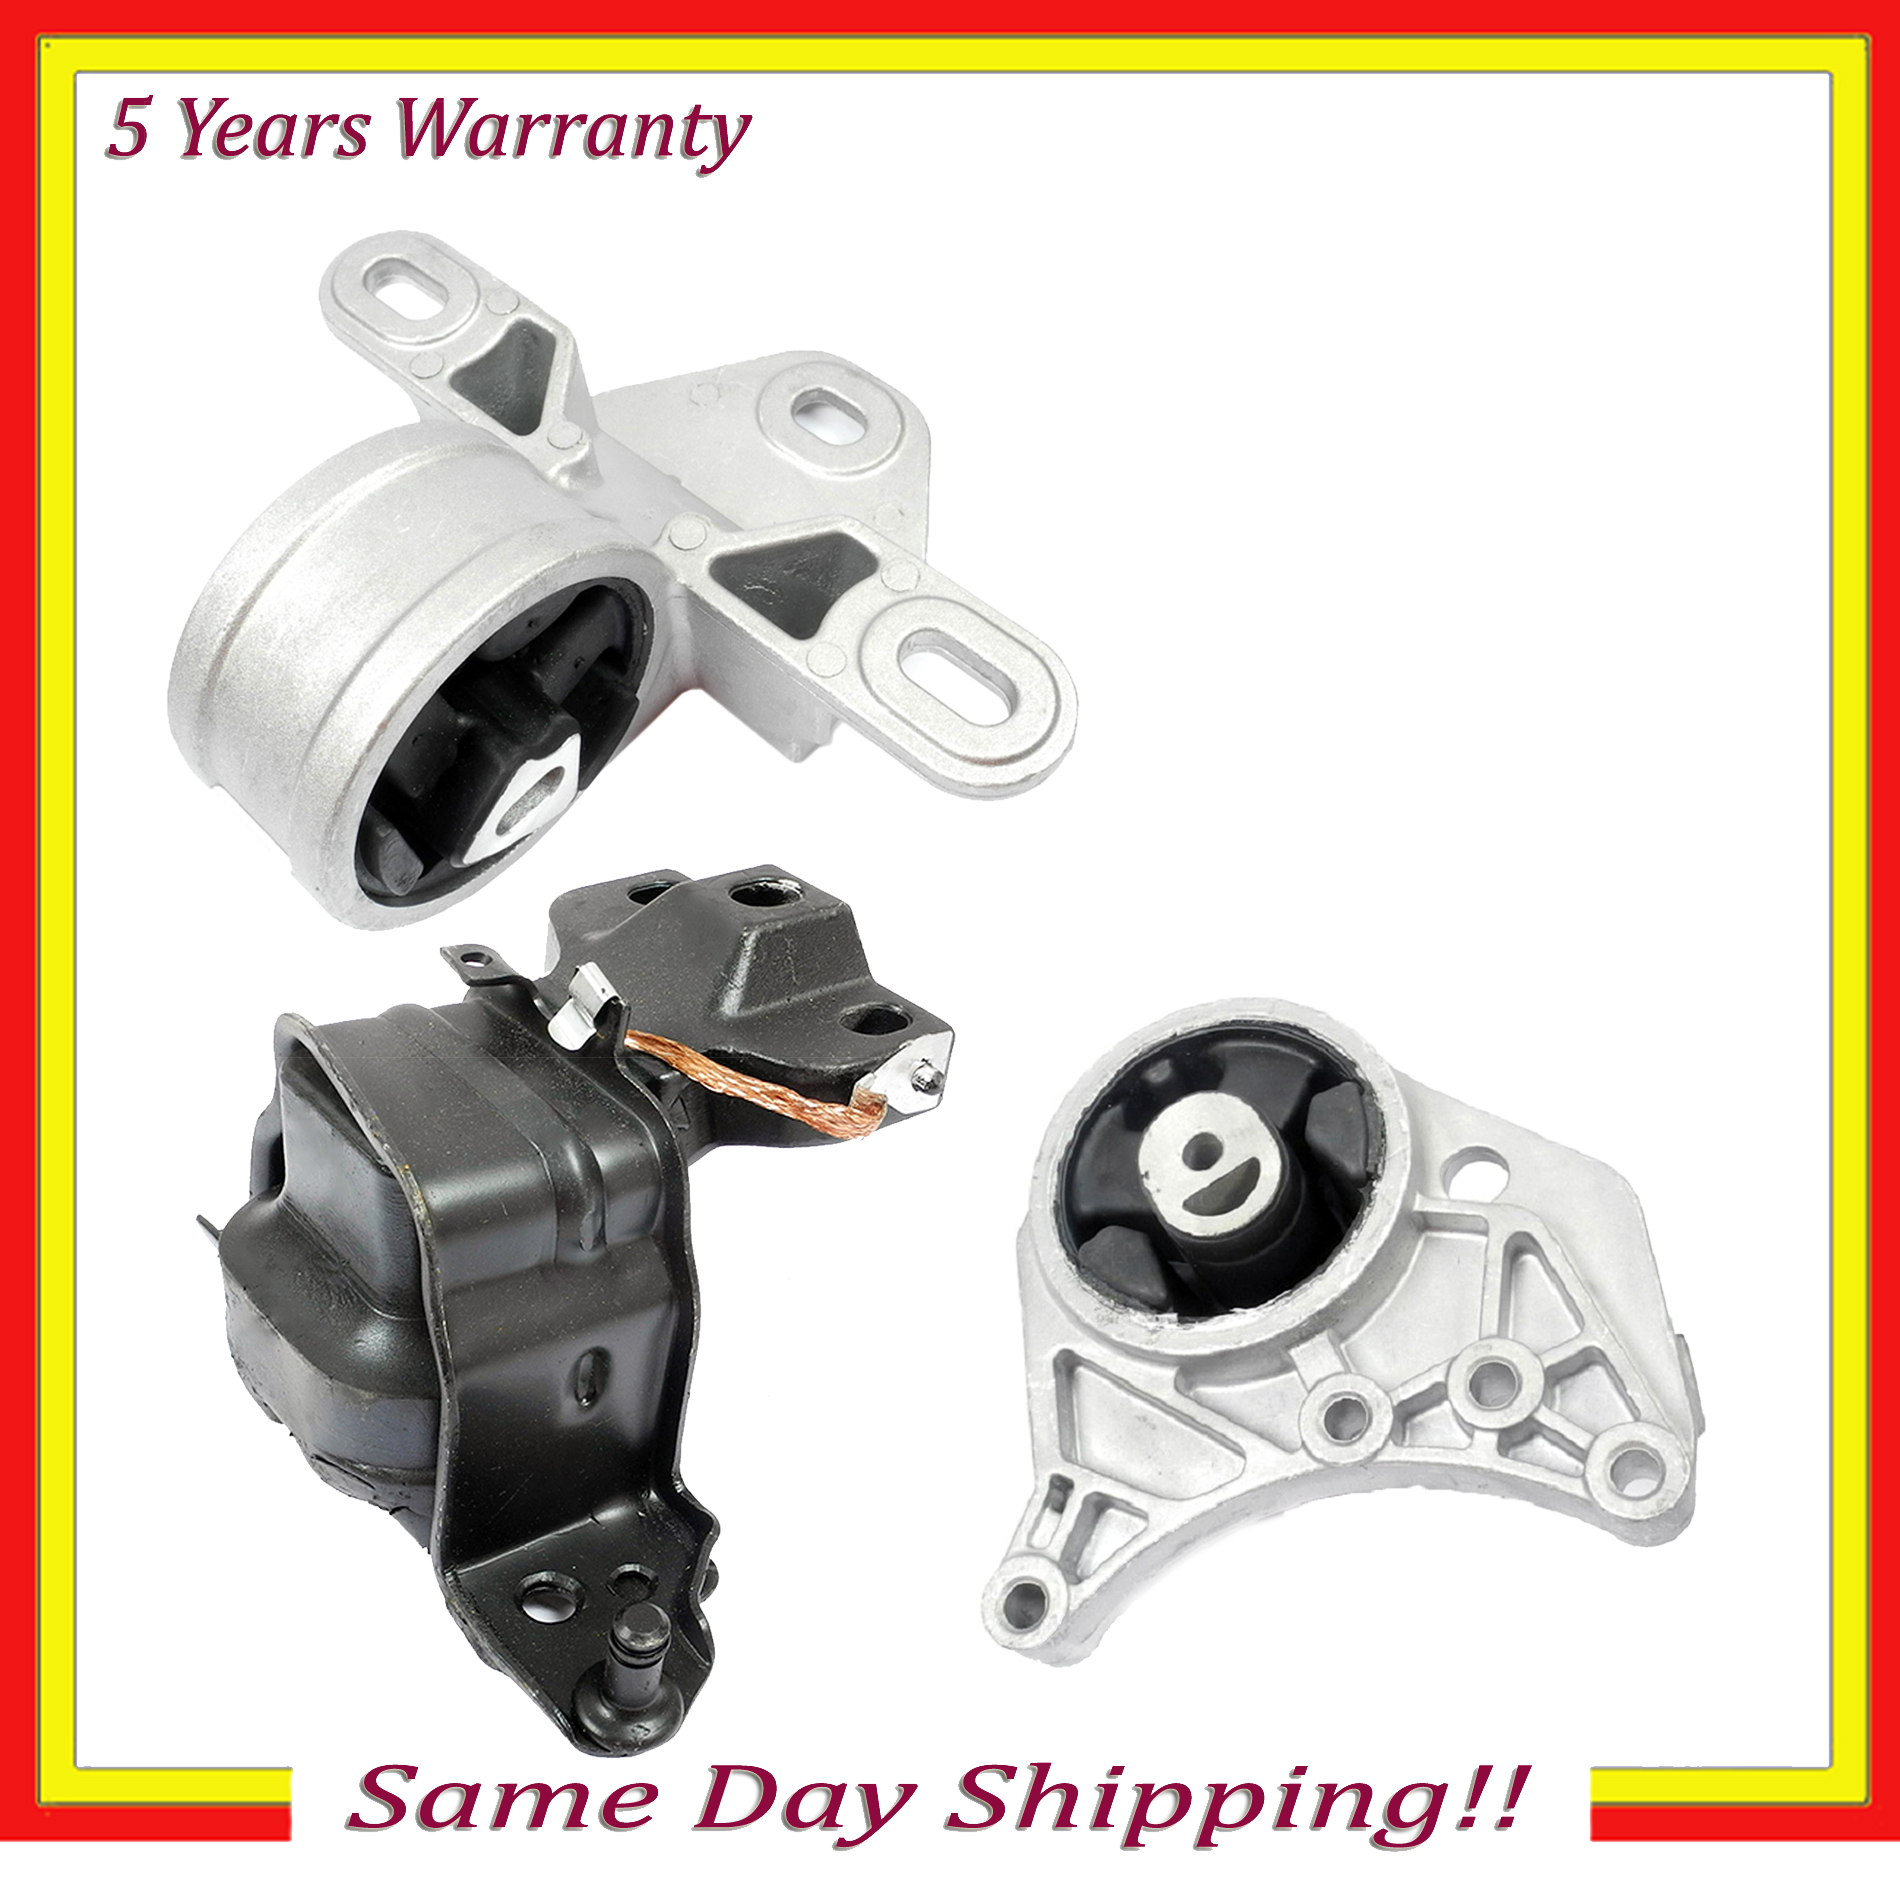 NEW 2001//2007 Chrysler Town /& Country 3.3L 3.8L Engine Motor /& Trans Mount 4 Set